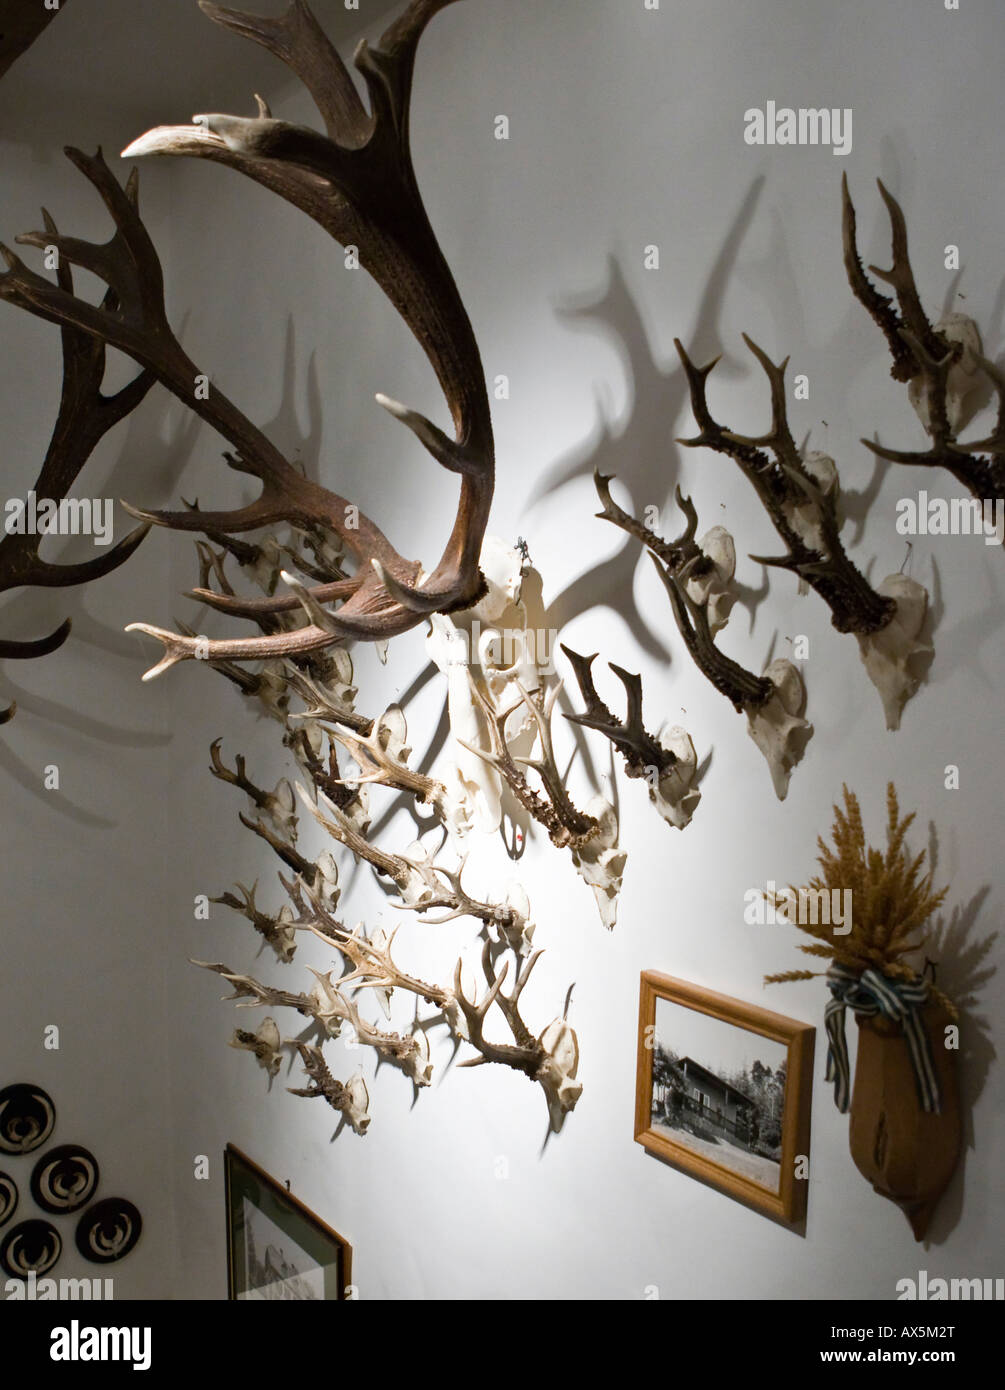 Deer antlers illuminated in a staircase at a hunting lodge, Hesse, Germany, Europe - Stock Image